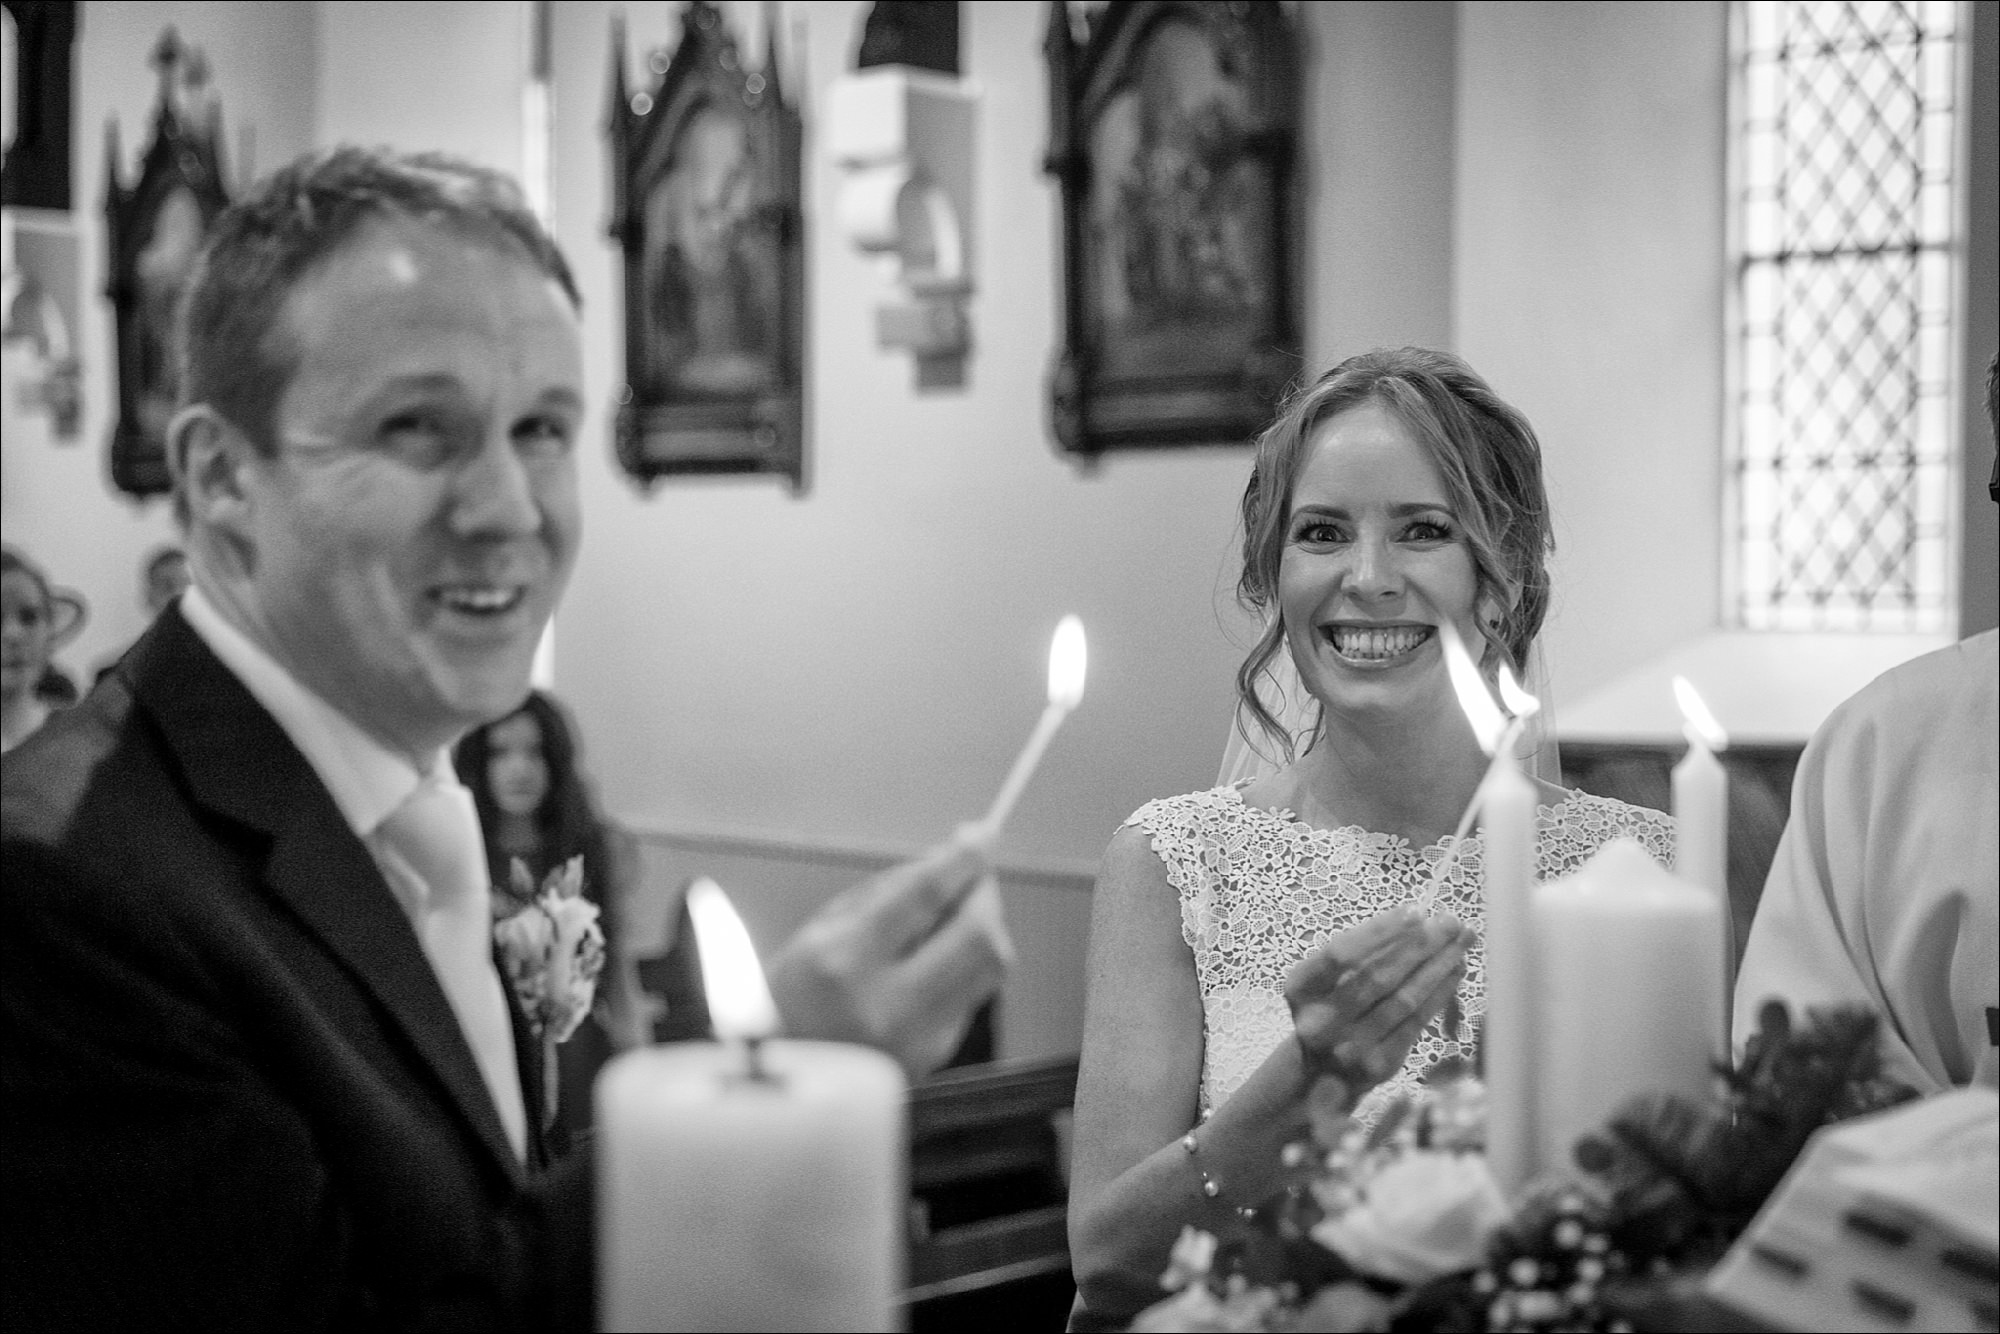 dublin wedding photographer david duignan photography tankardstown weddings slane rathfeigh church ireland 0019